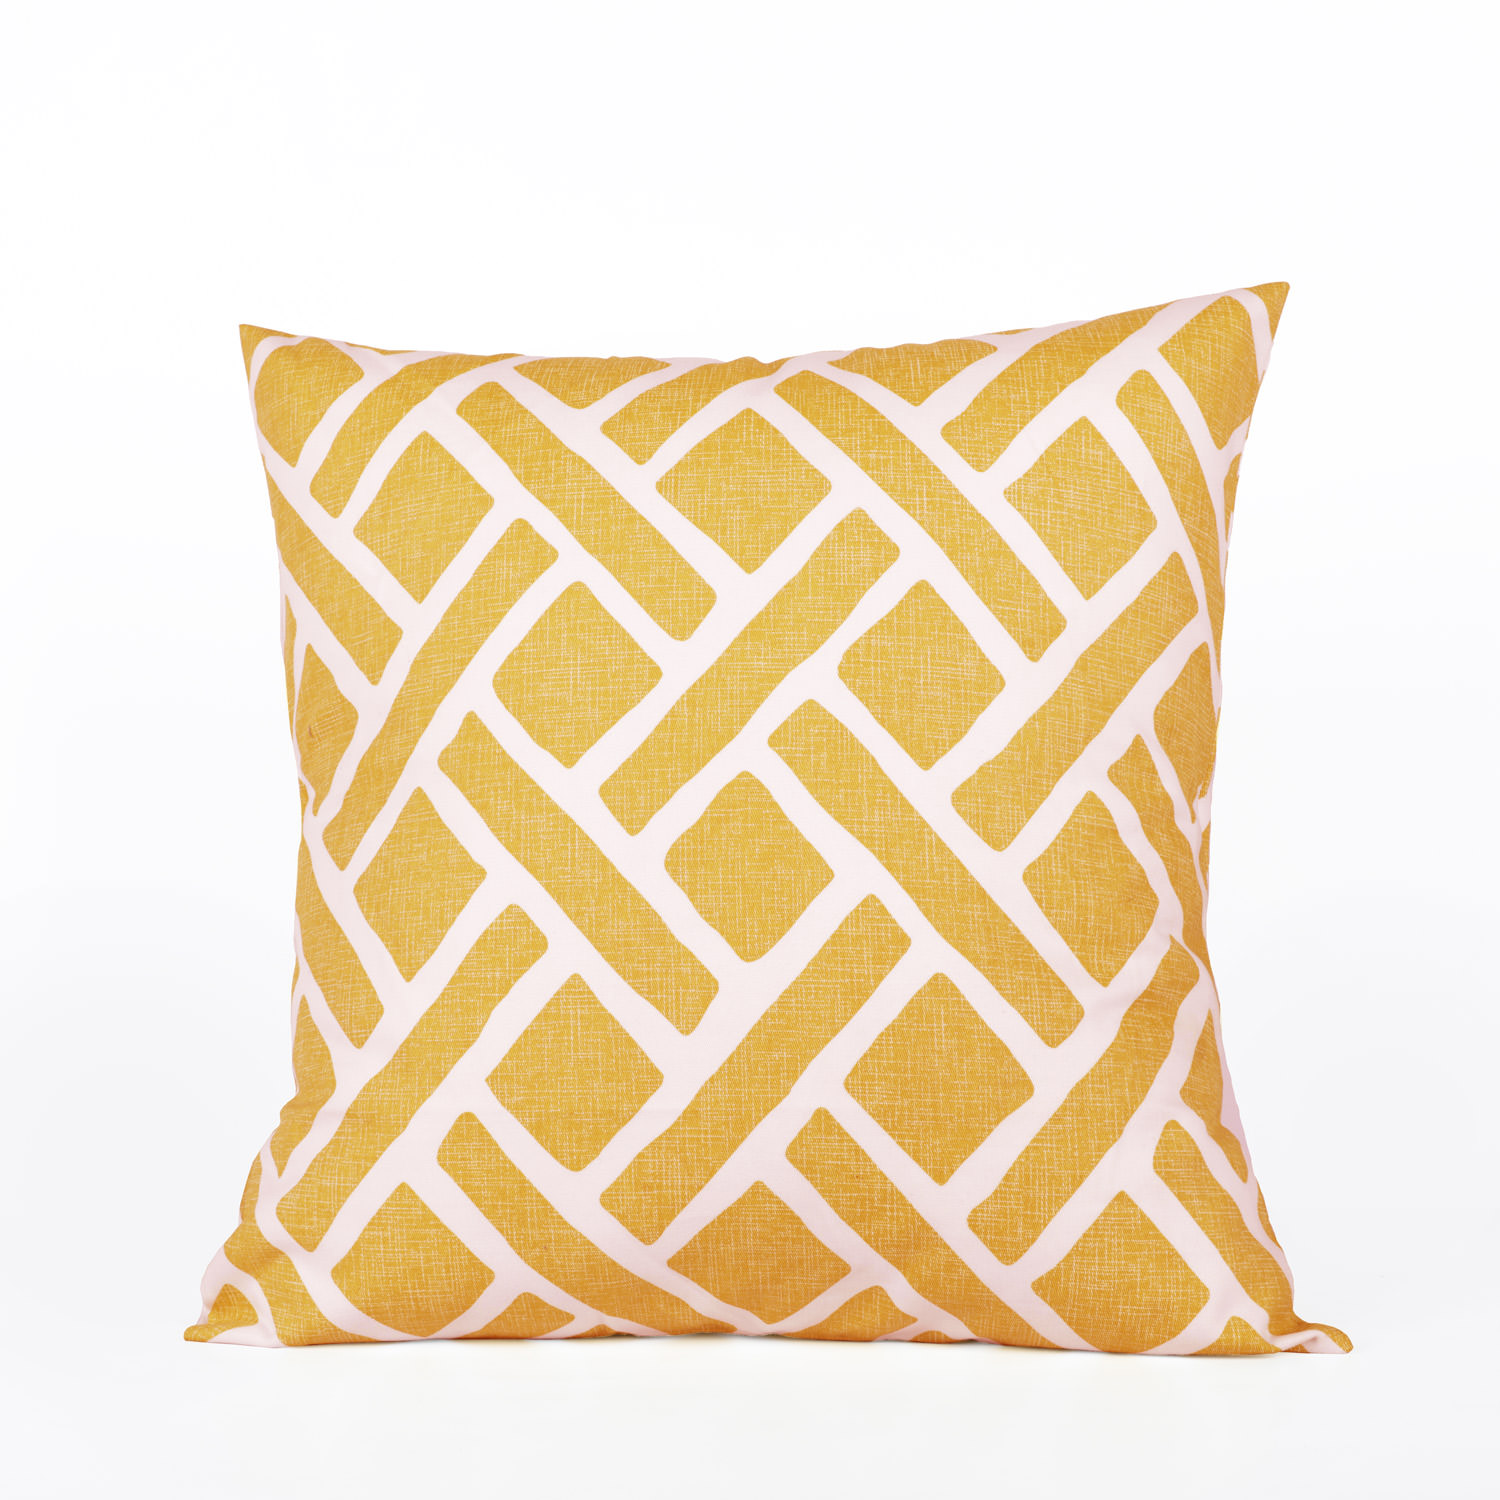 Martinique Yellow Printed Cotton Cover- PAIR